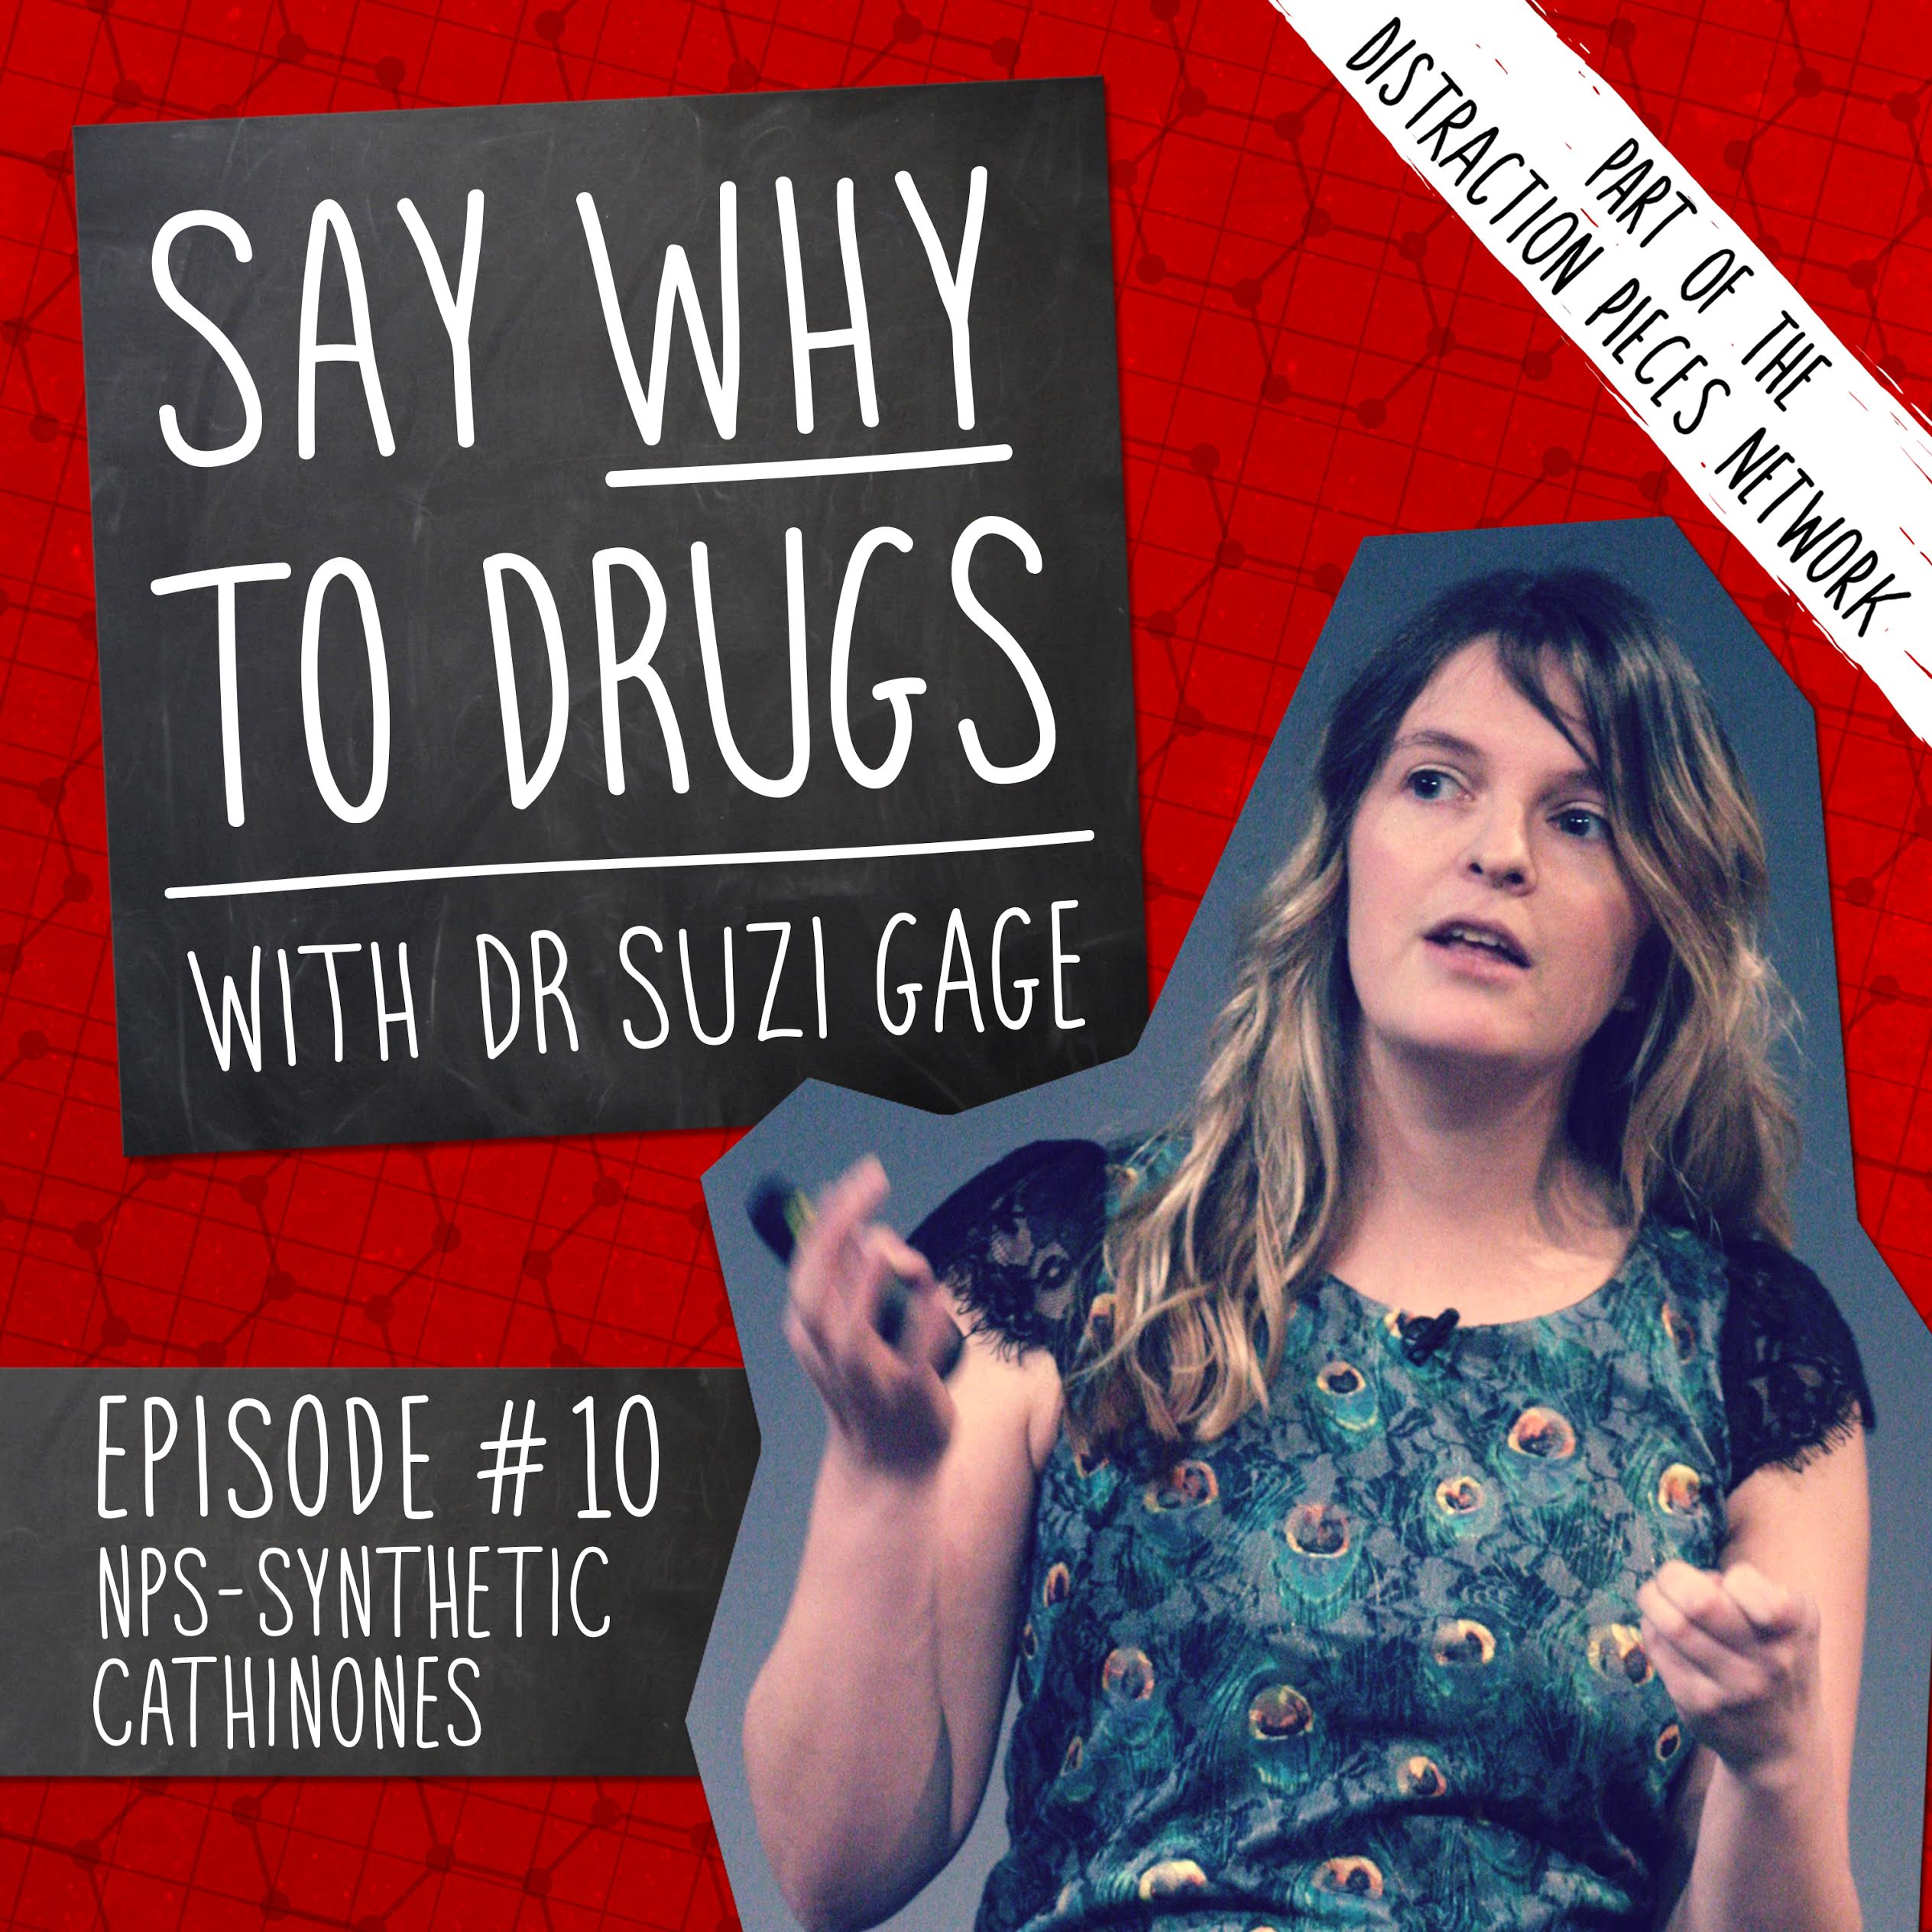 why are synthetic drugs legal A look at the most dangerous synthetic drugs used by kids in america from insider, former dea agent, warren rivera more on the risks and how parents can help.